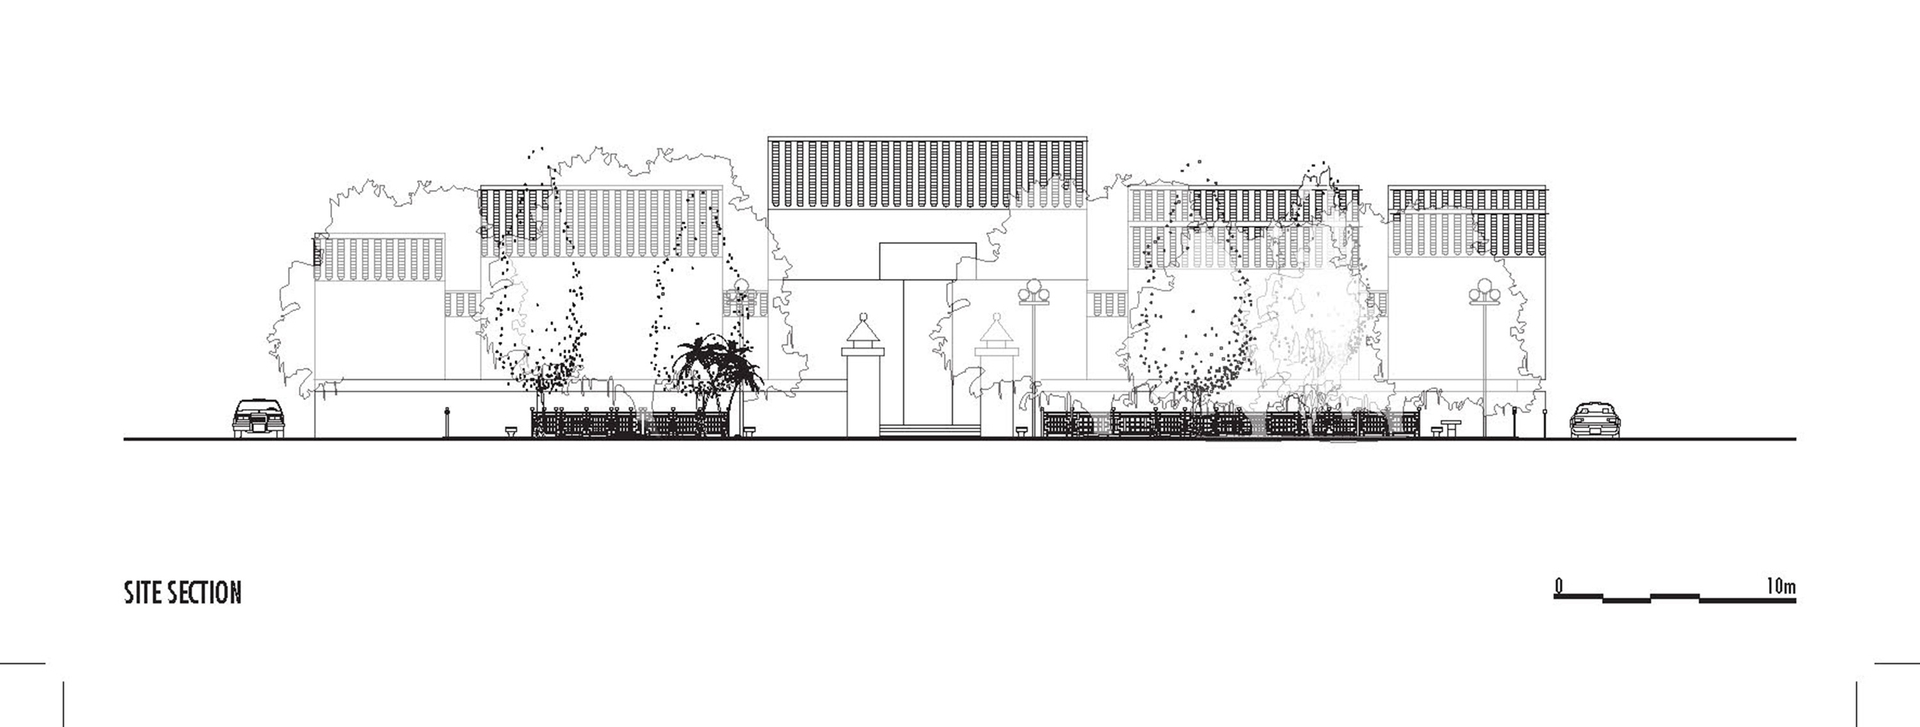 Enlarge Photo: Project 1 - (Inter)positioning: Yau Ma Tei Community Centre Rest Garden Site section. By ZHENG Ying.